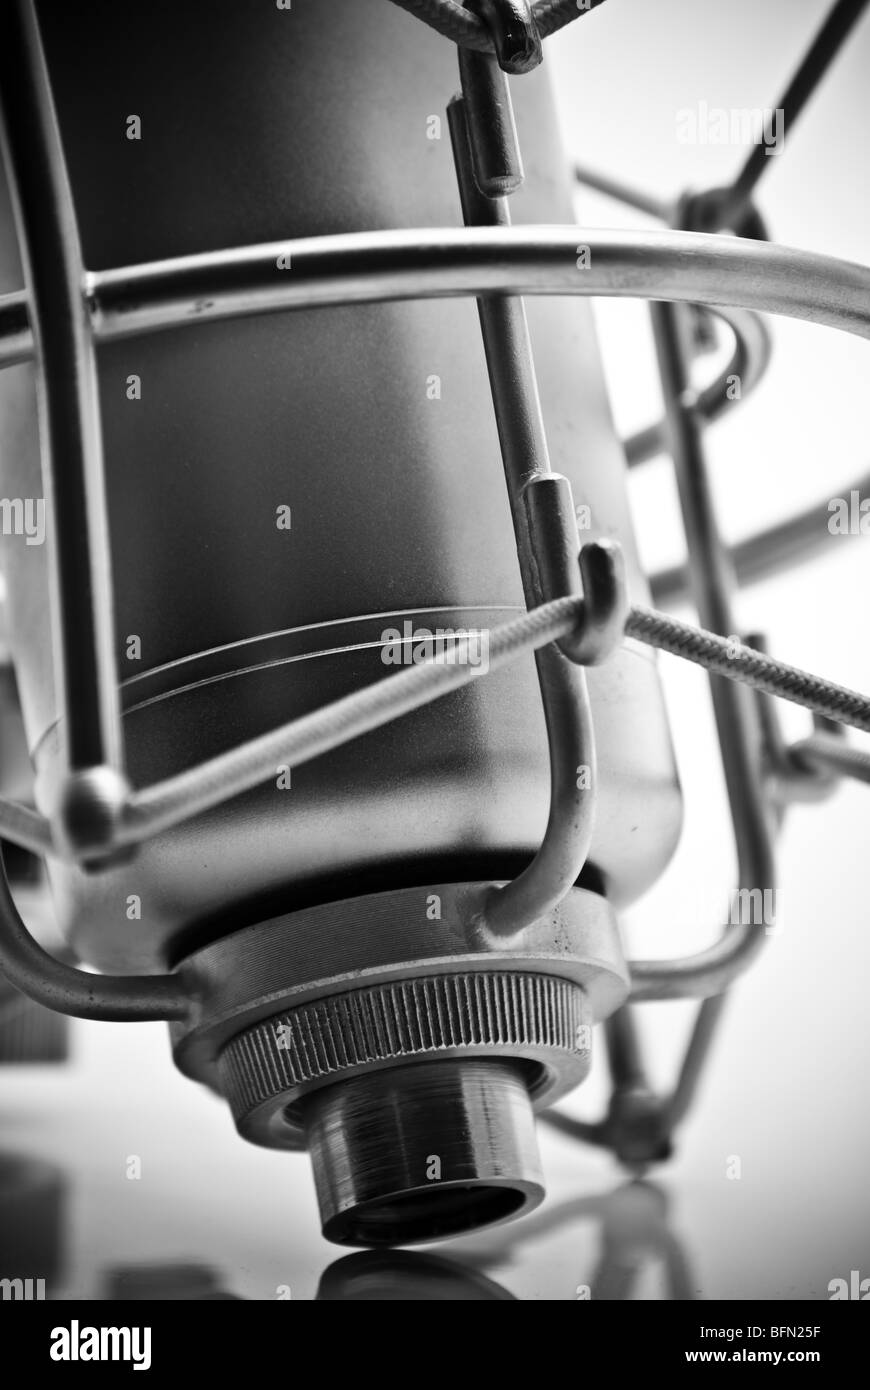 Black and white image of a microphone base and shockmount with some reflection - Stock Image